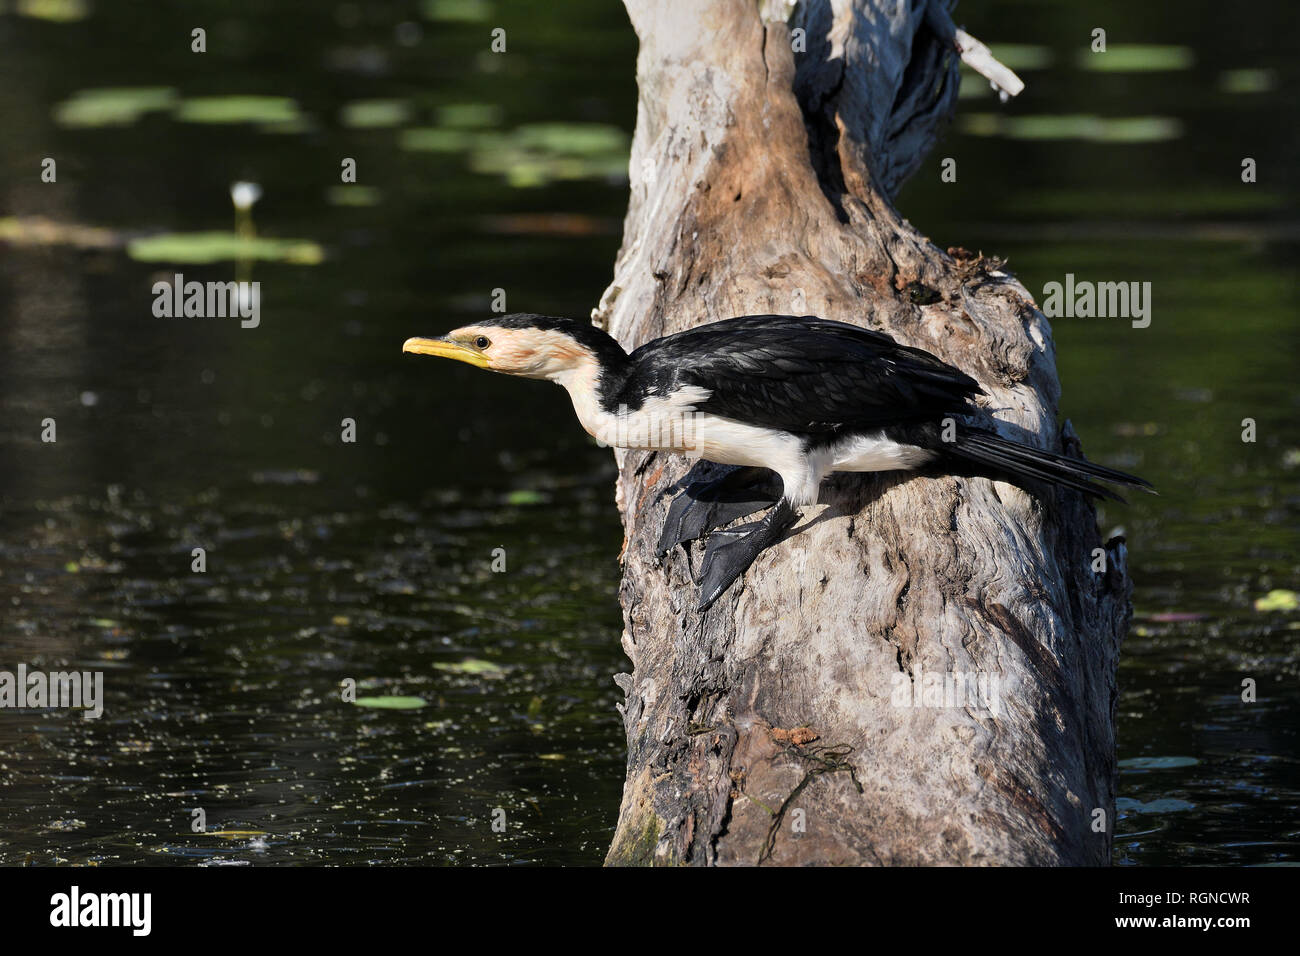 An Australian, Queensland Little Pied Cormorant ( Phalacrocorax melanoleucos ) about to dive into a lagoon from an old dead tree - Stock Image